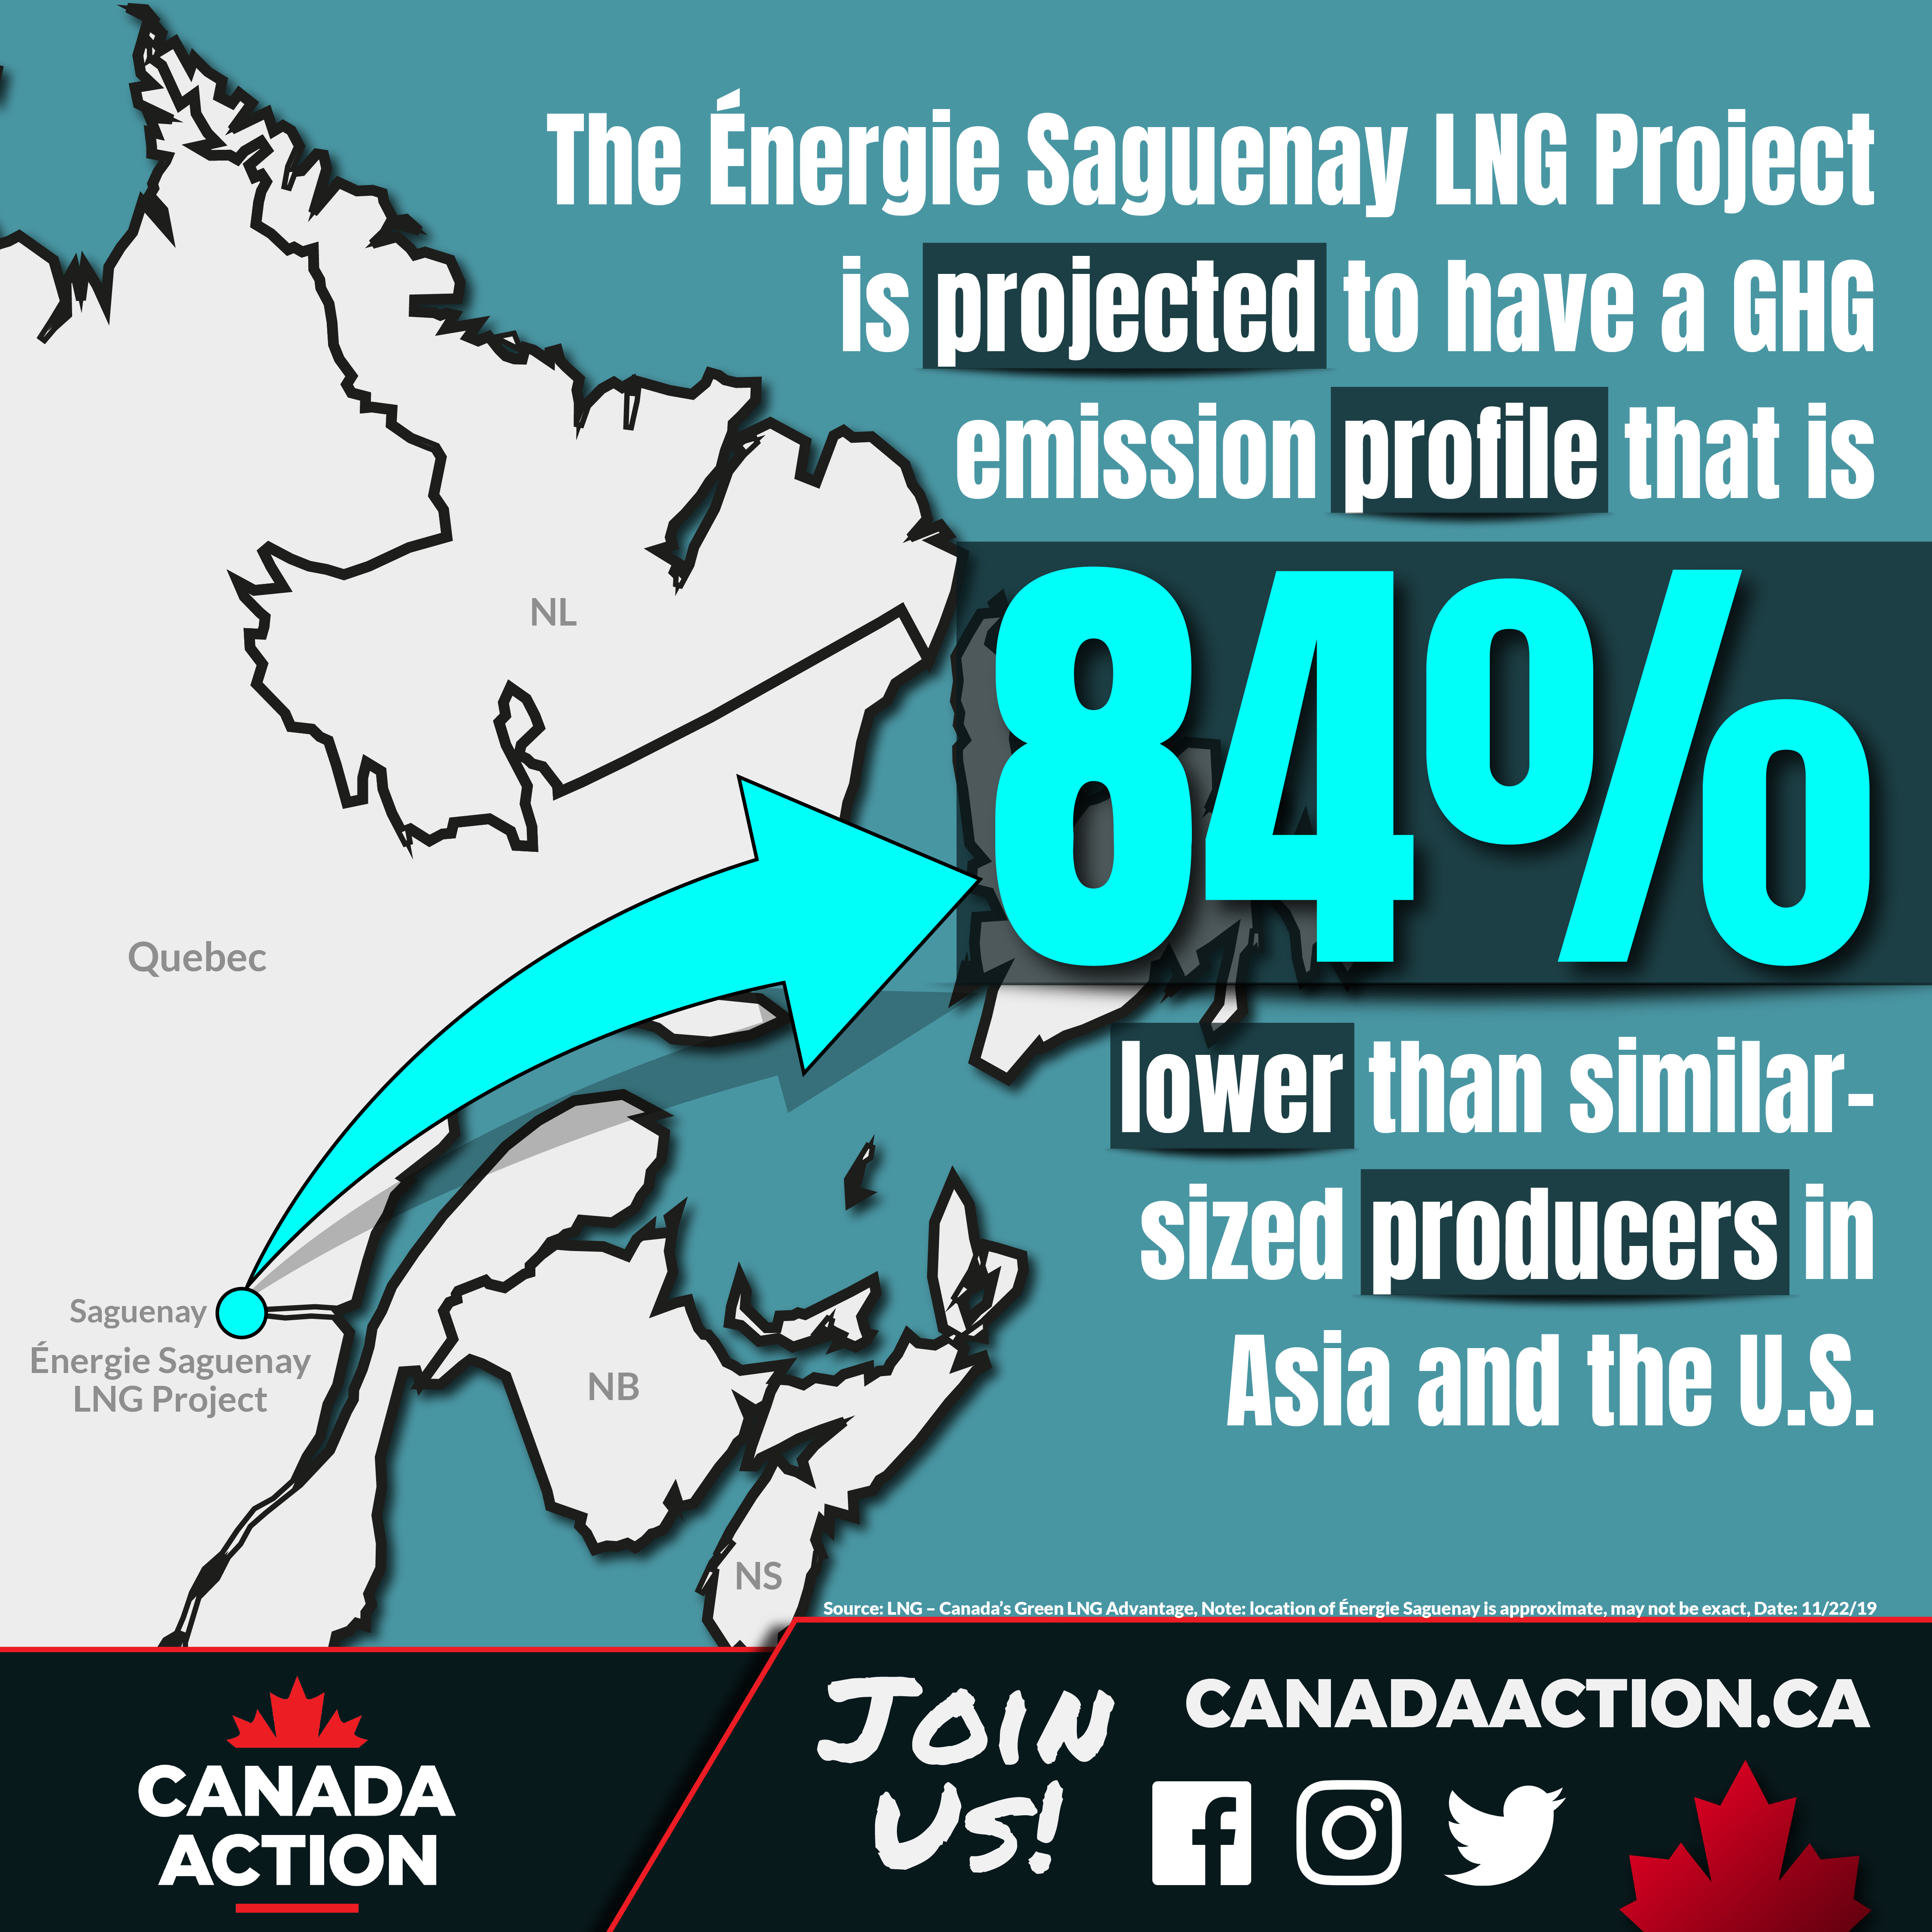 Energie Saguenay LNG Project Canada Quebec - GHG Emissions Intensity